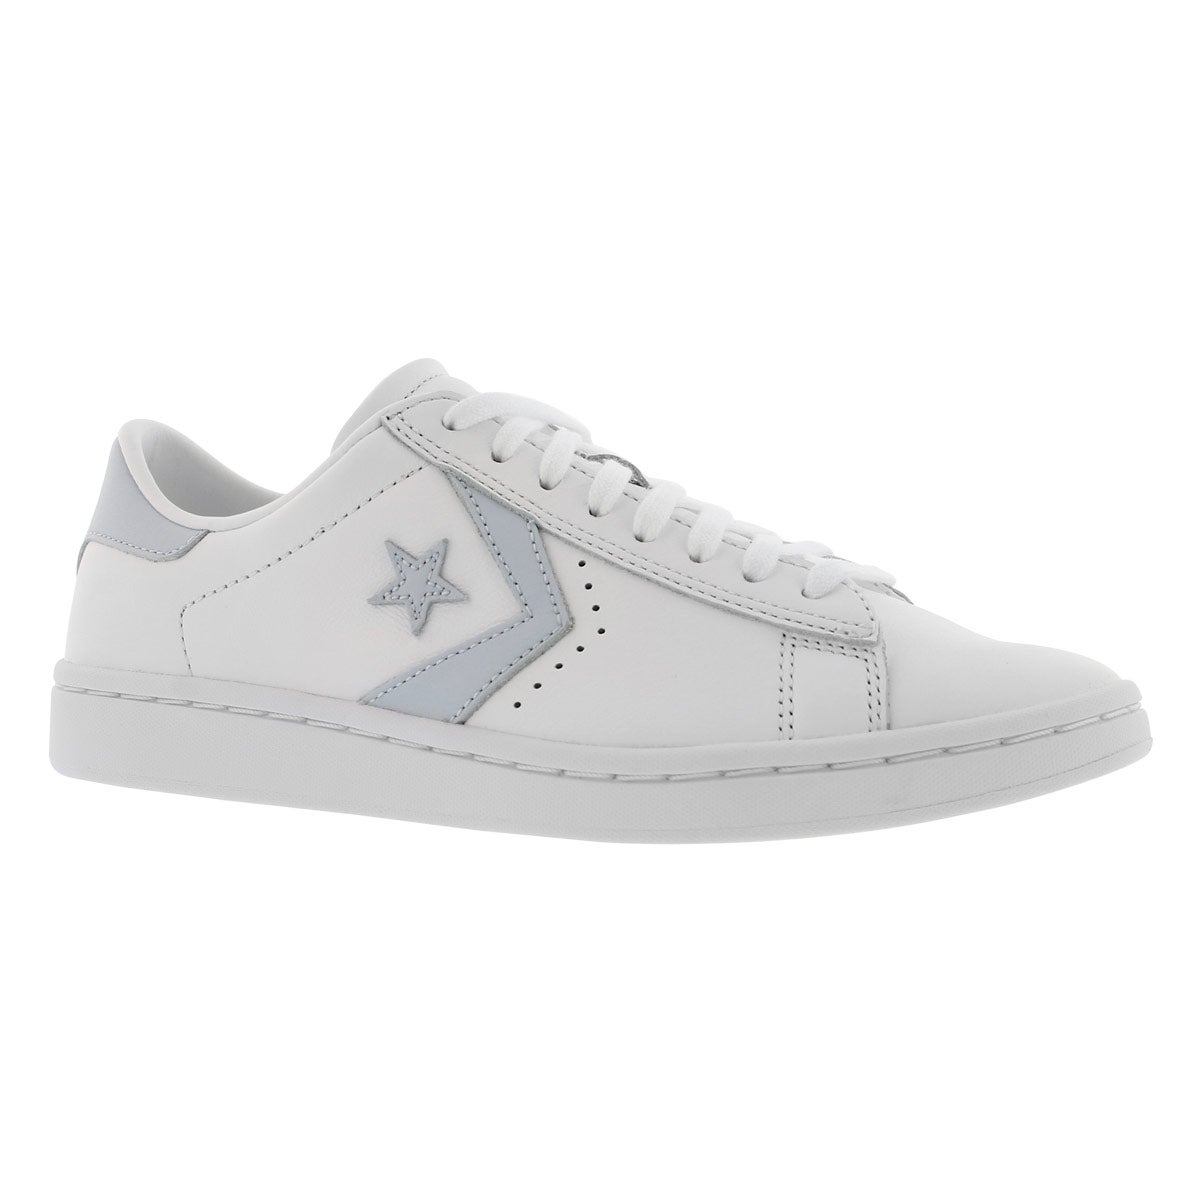 Women's PL LP white/porpoise sneakers